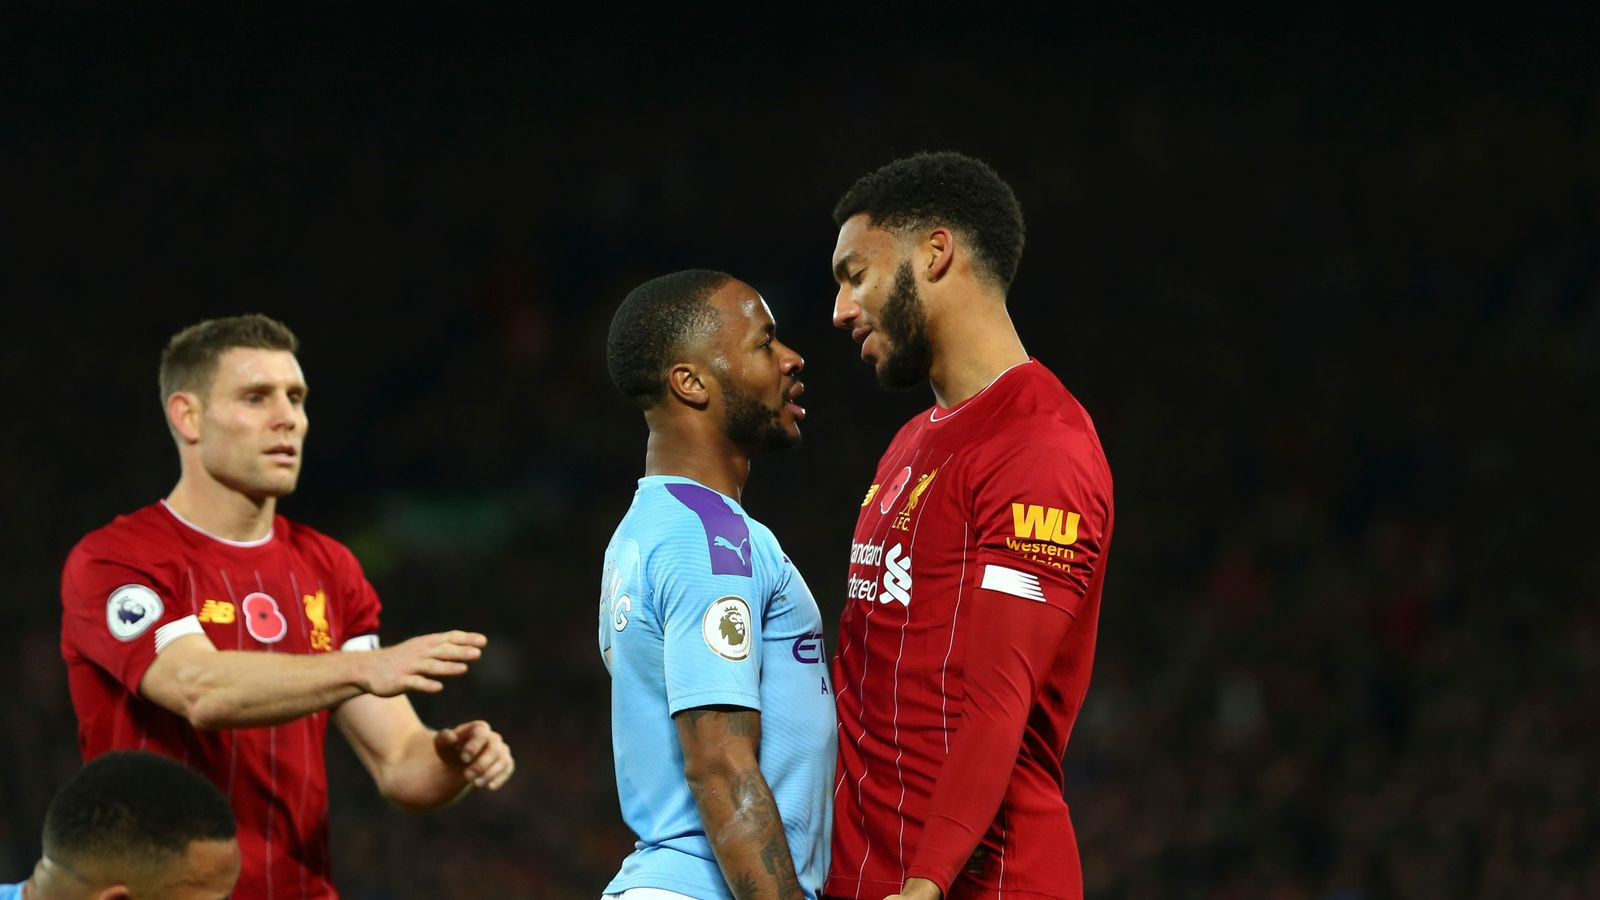 Raheem Sterling out of England game after 'disturbance' with teammate Joe Gomez